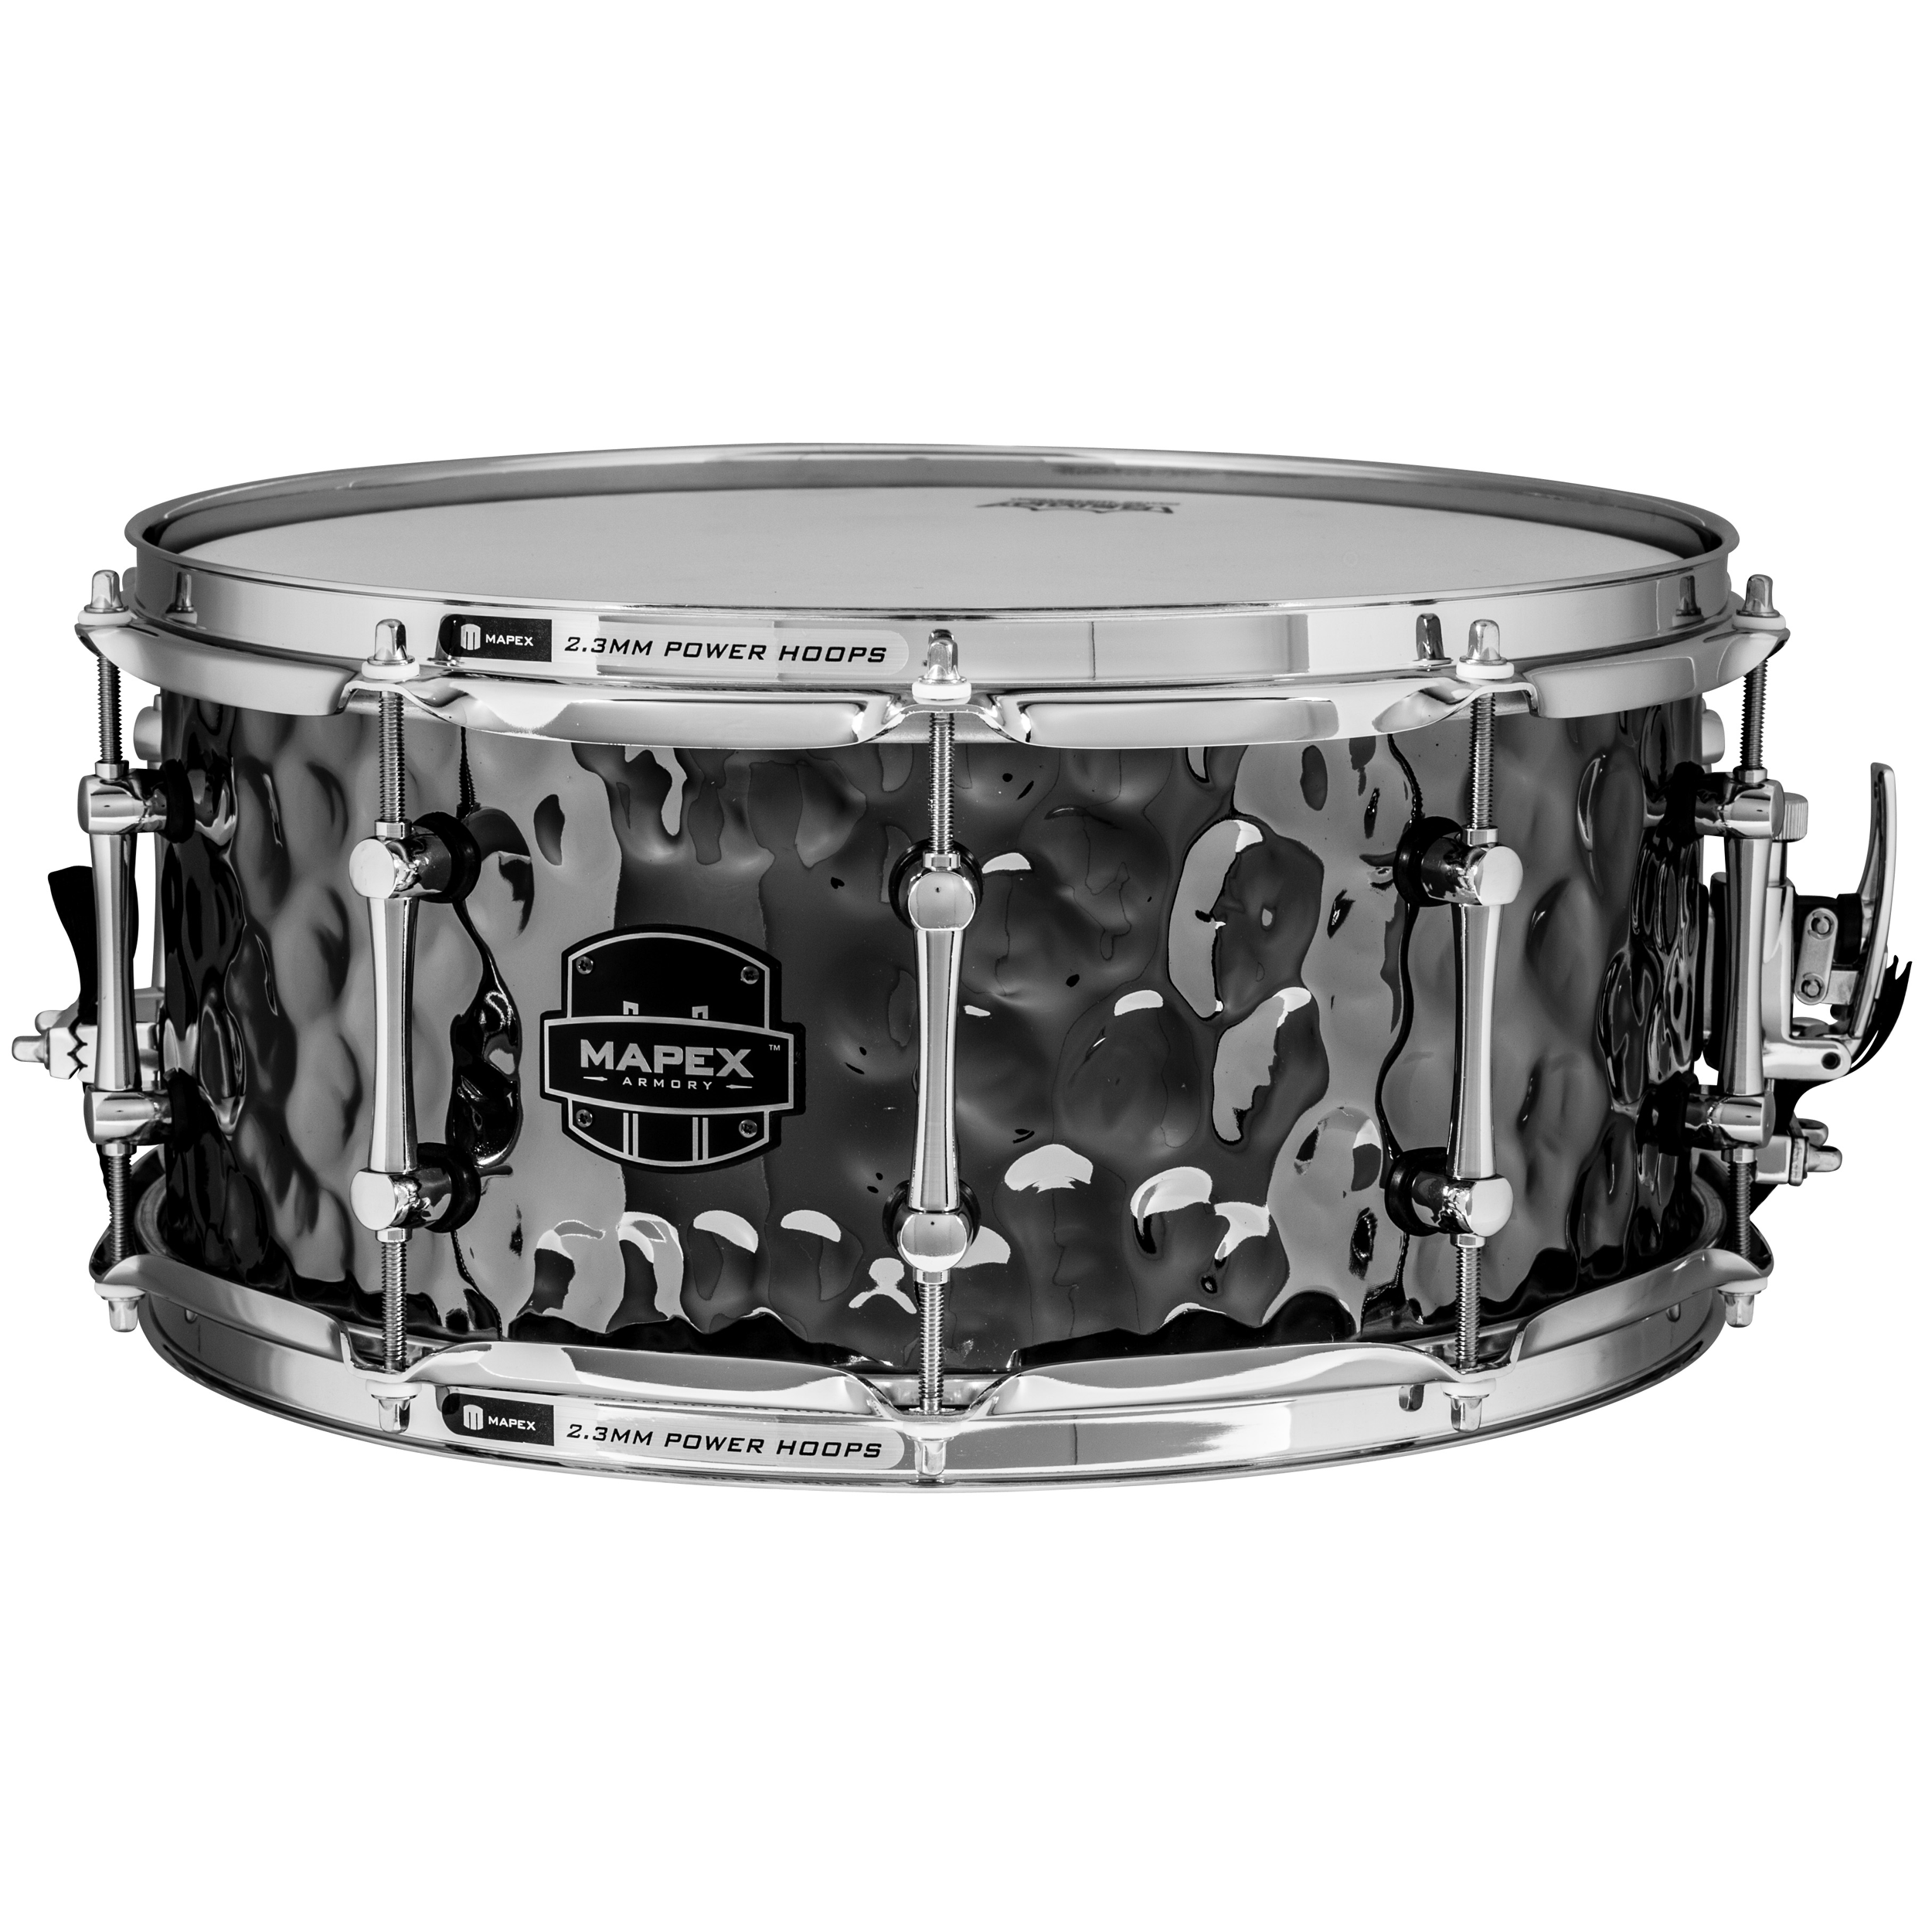 "Mapex 6.5"" x 14"" Armory Daisy Cutter Hammered Steel Snare Drum"